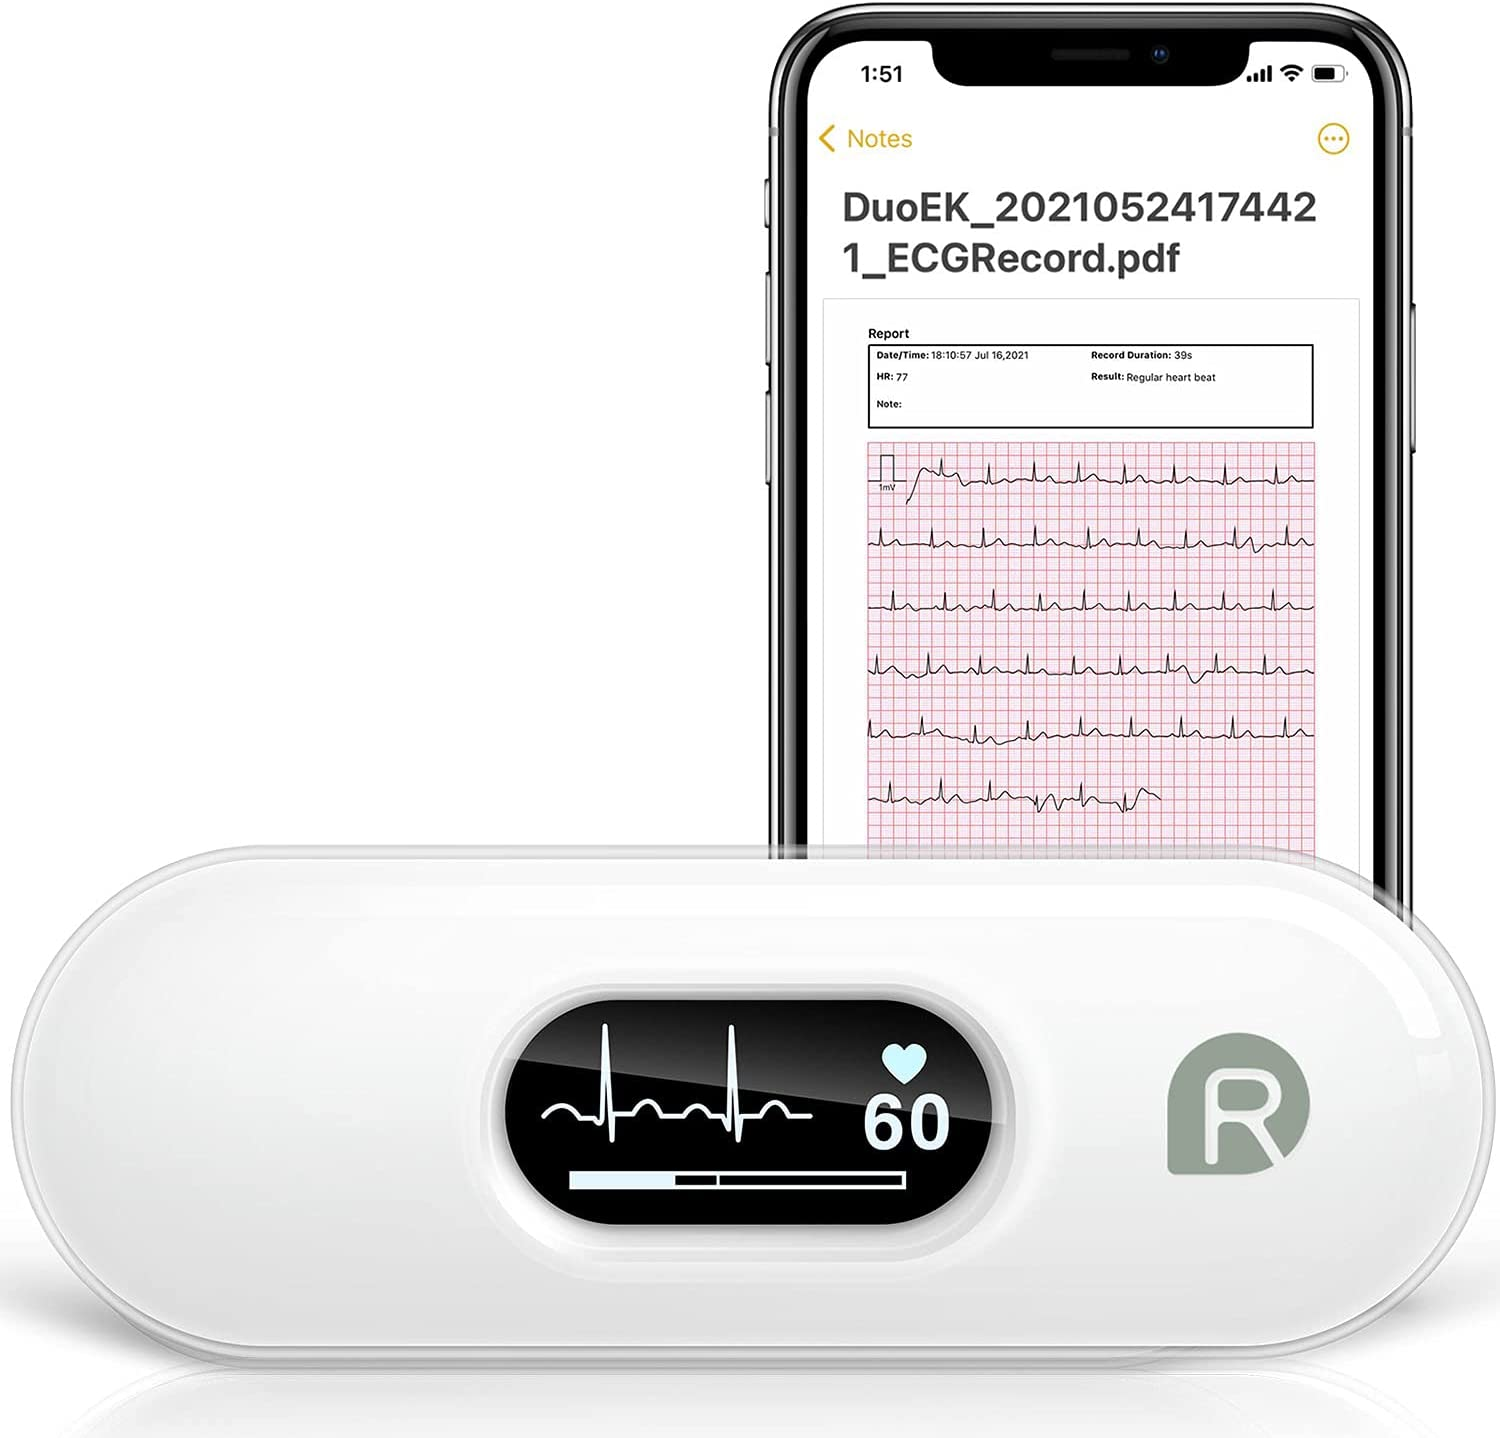 Wellue DUOEK-S Bluetooth Heart Monitoring Device $44.99 Coupon